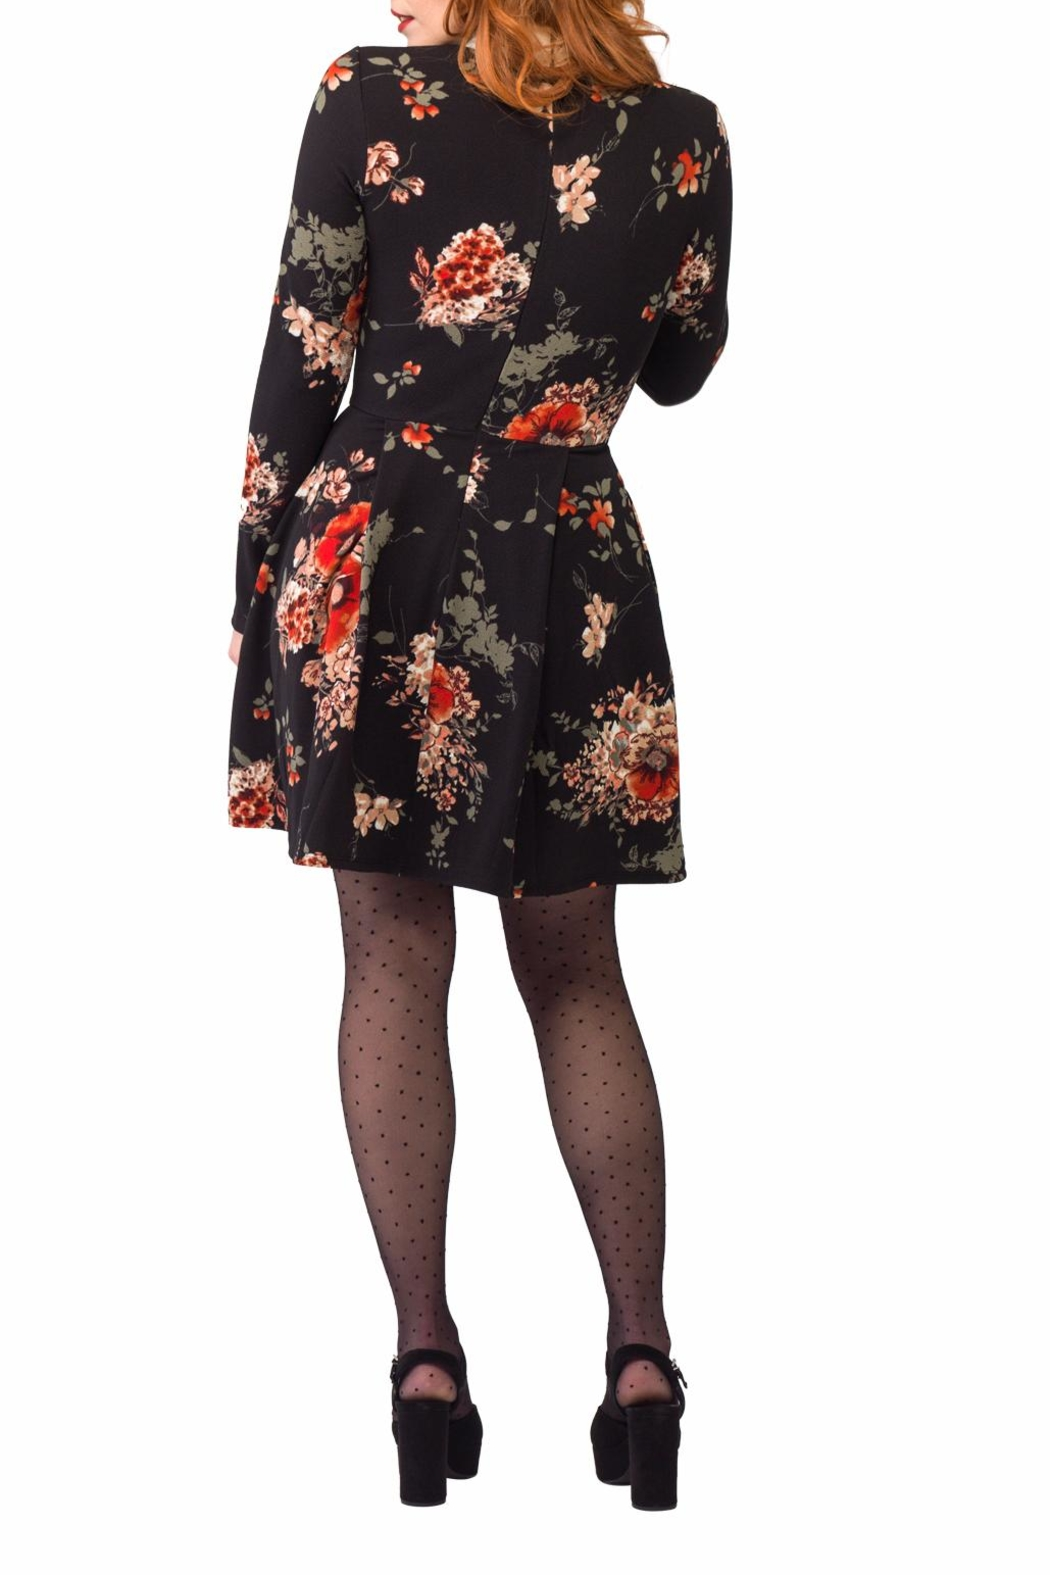 Smak Parlour Long-Sleeve Floral Dress - Side Cropped Image